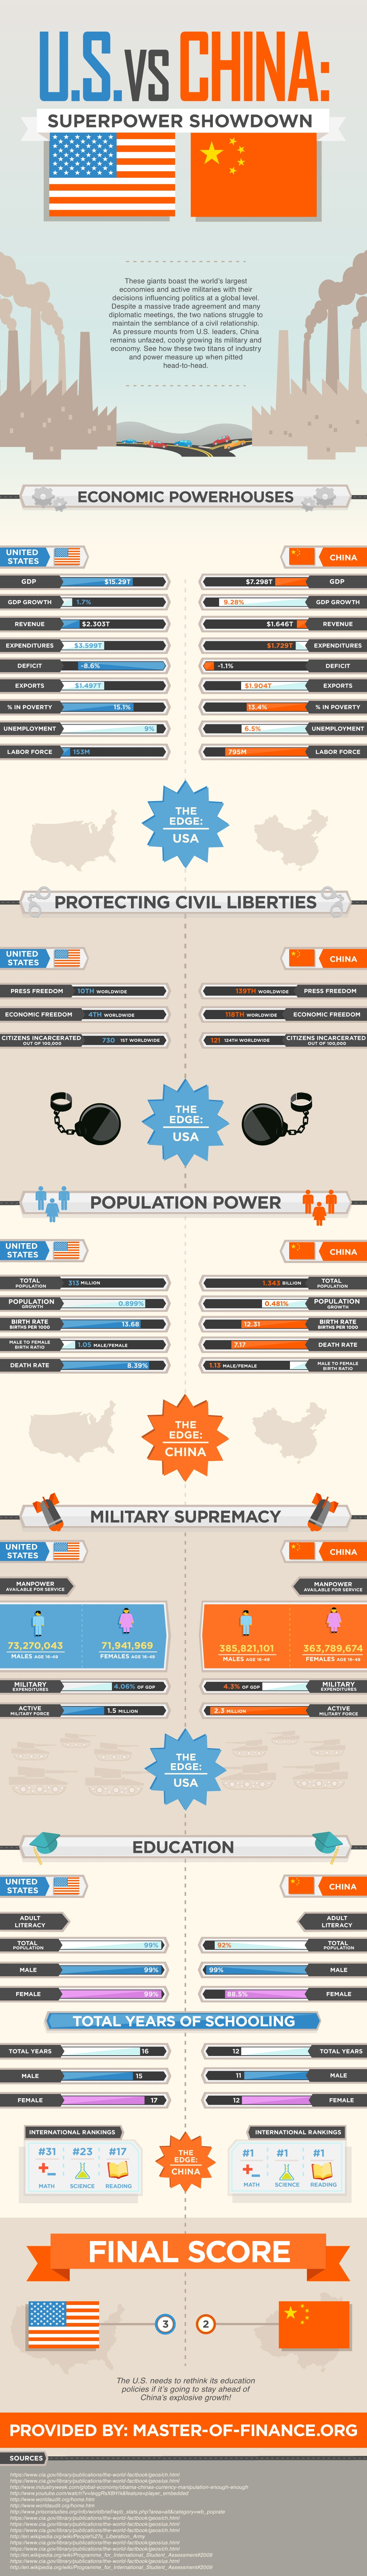 us-vs-china--superpower-showdown_508044fe69ce6